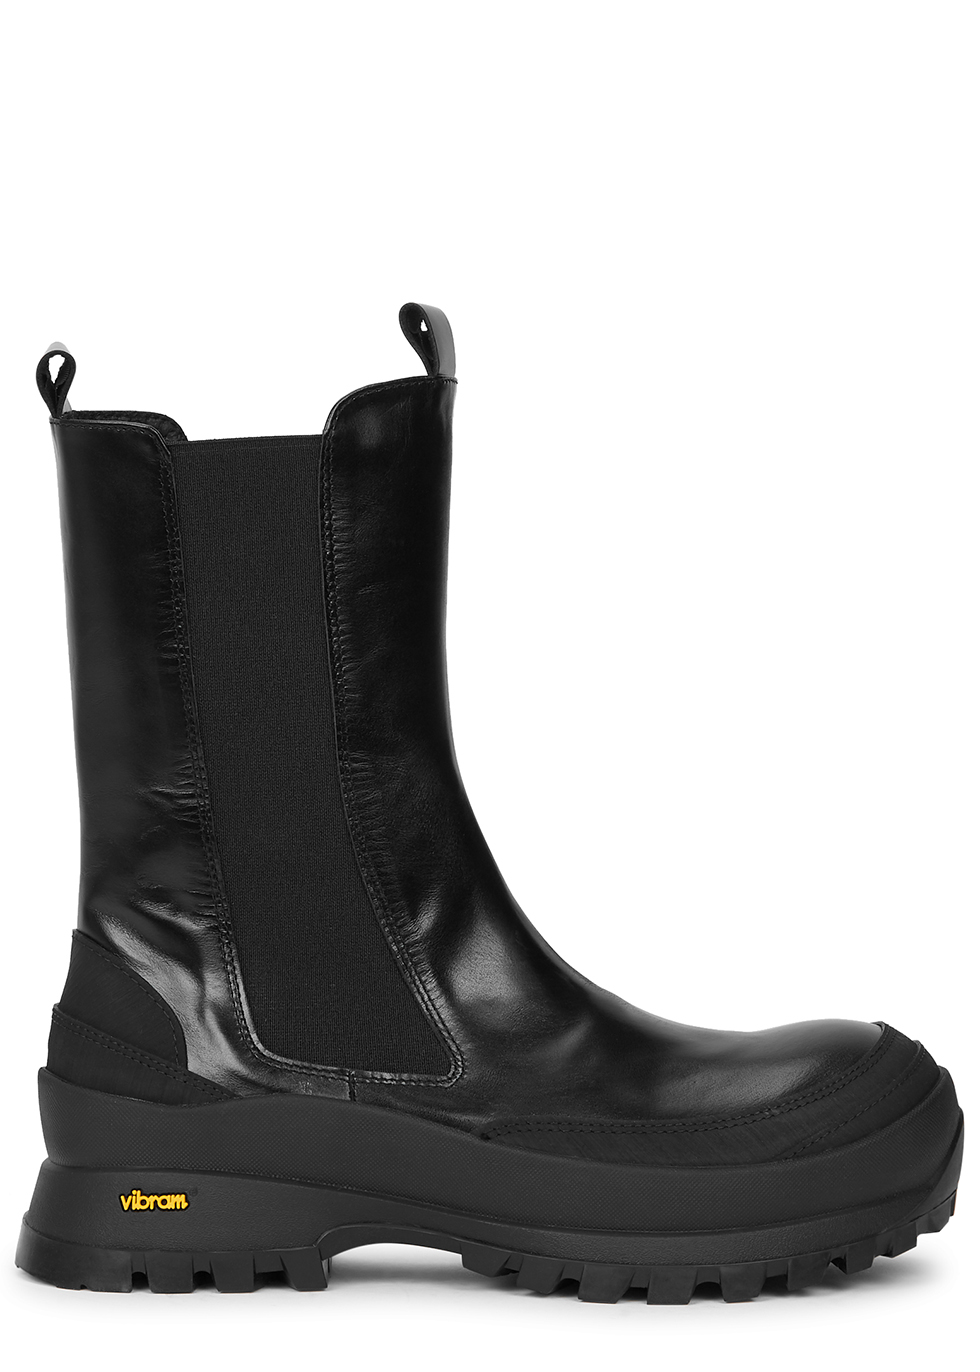 Chubby black leather Chelsea boots